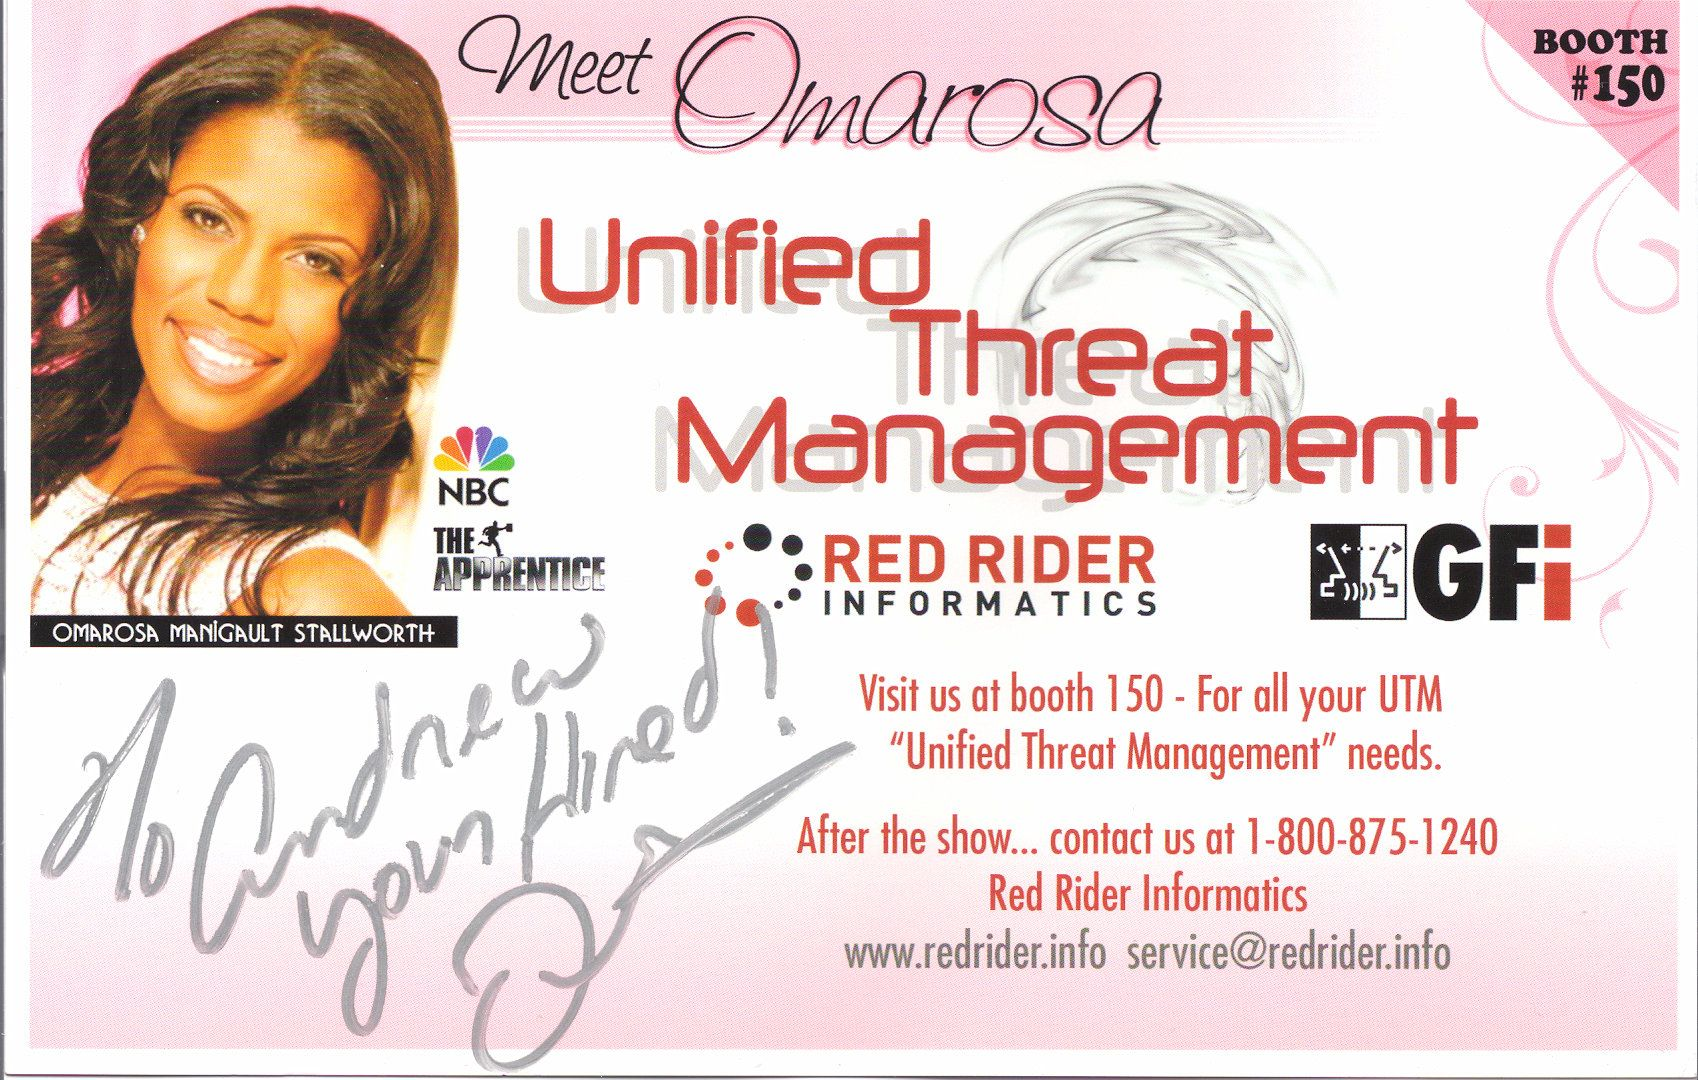 Omarosa Card in 2008